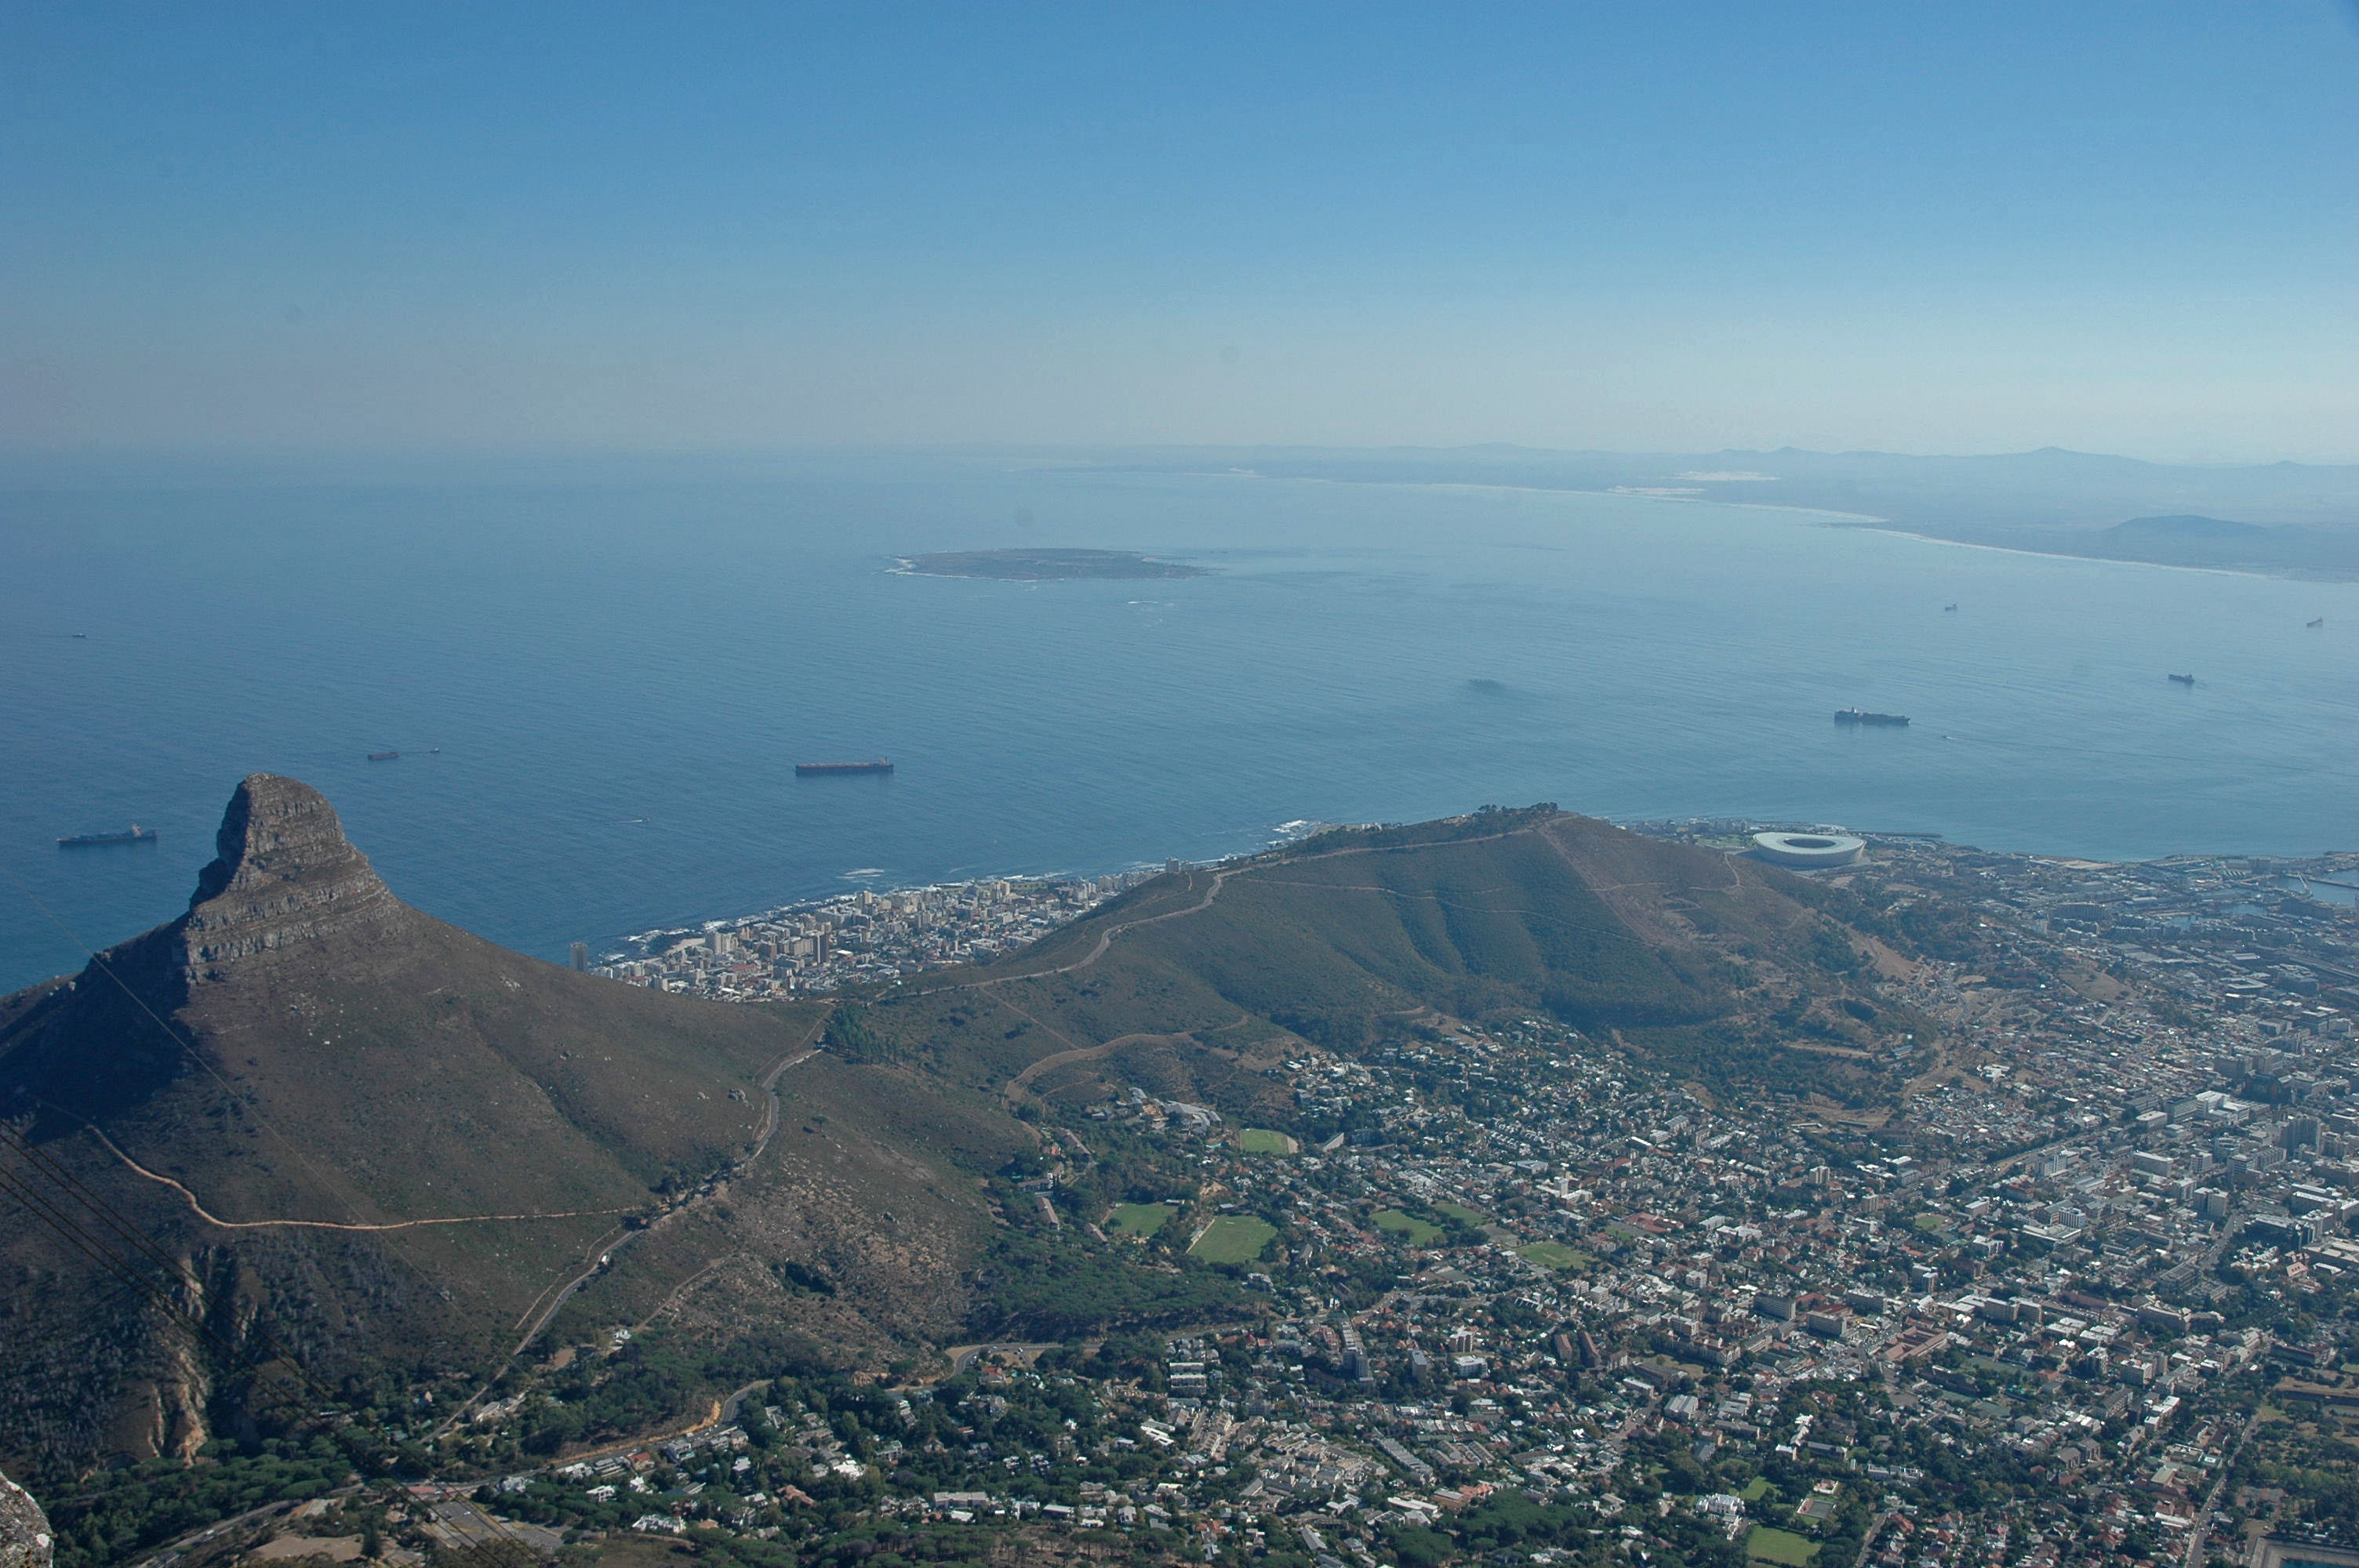 View of Lion's Head Mountain and Cape Town, from Table Mountain